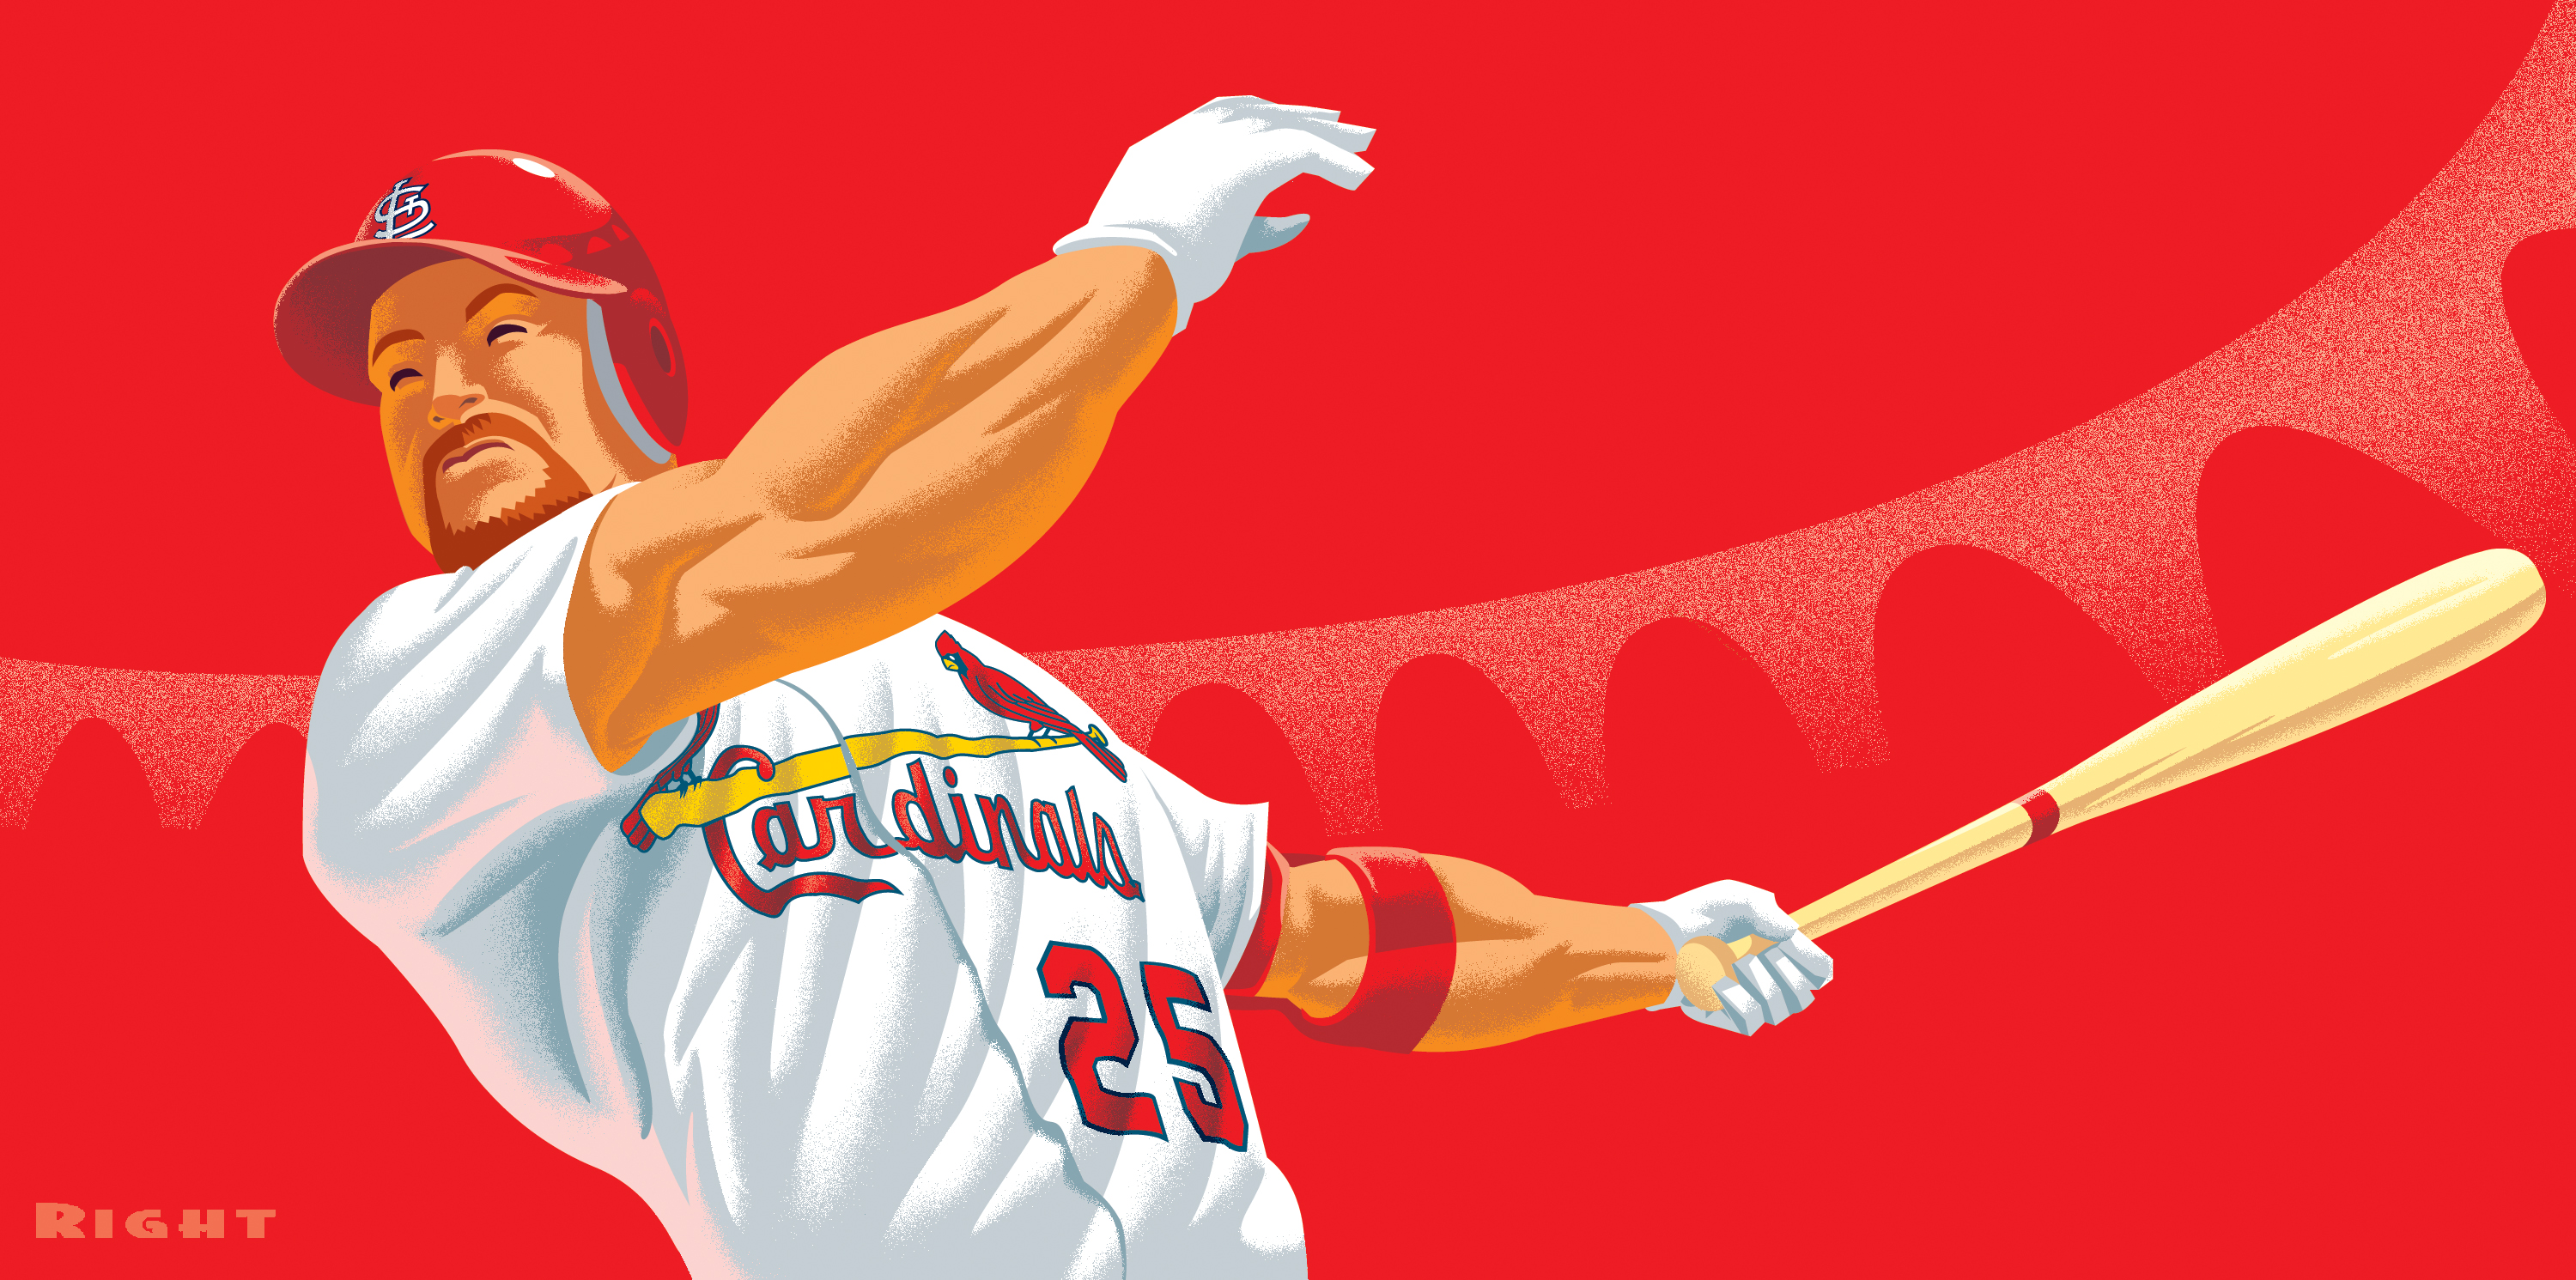 Cardinals McGwire Billboard Art